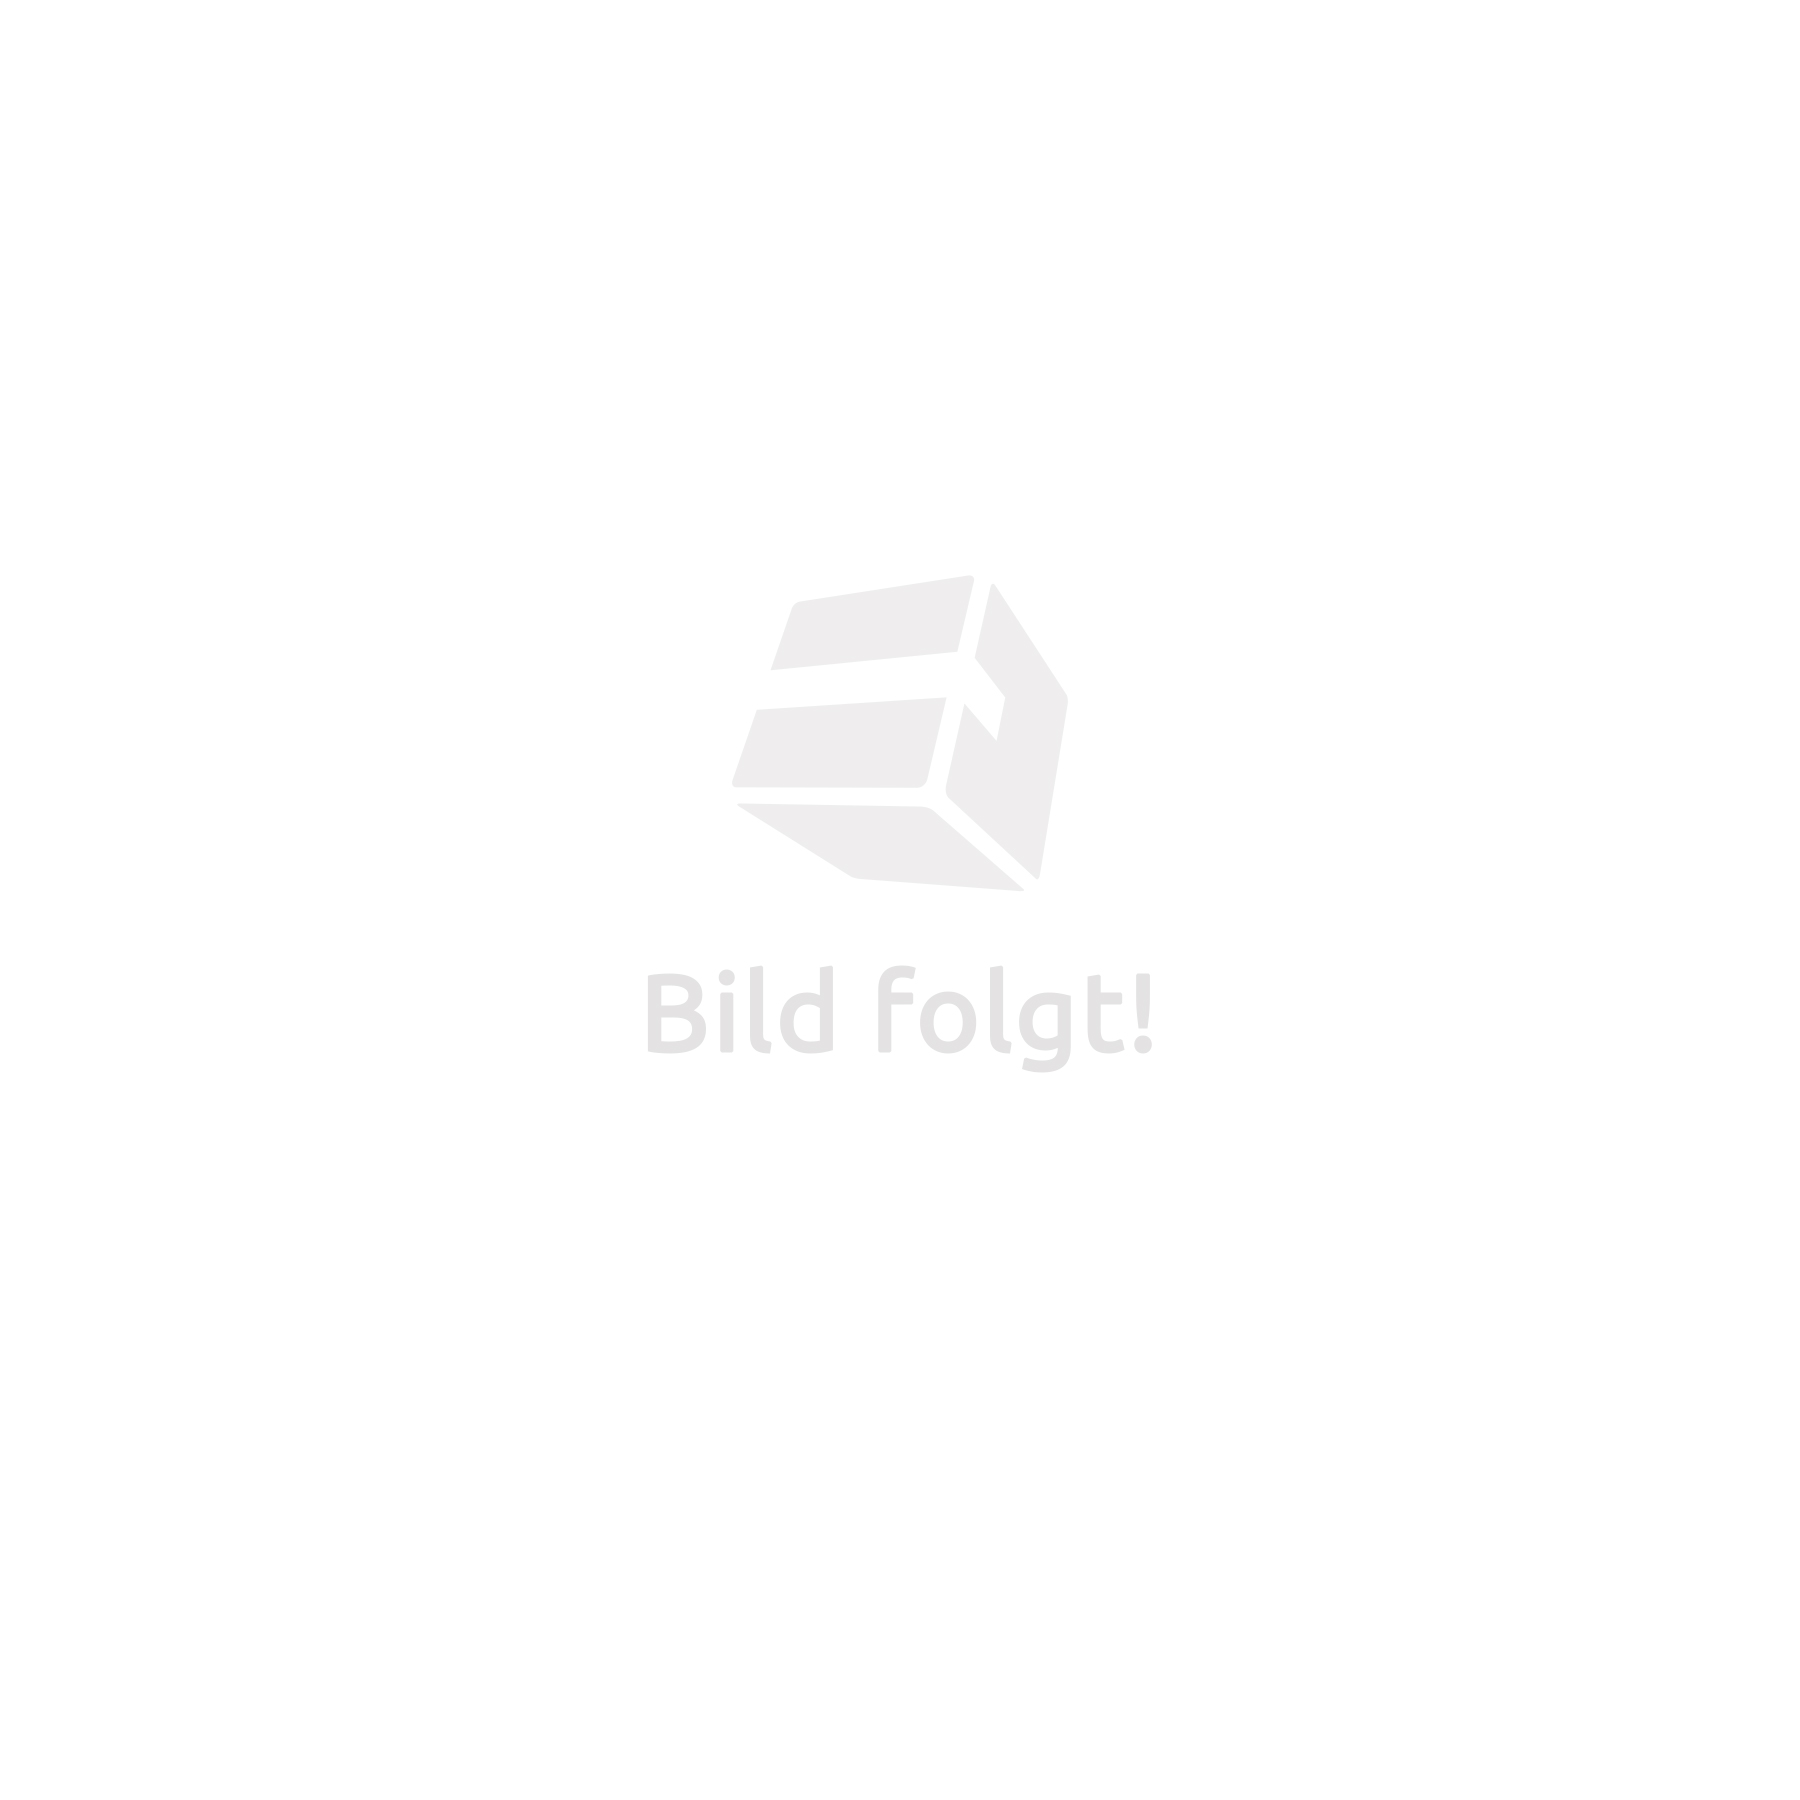 Whiteboard discussion board 65x95cm white + 12 magnets